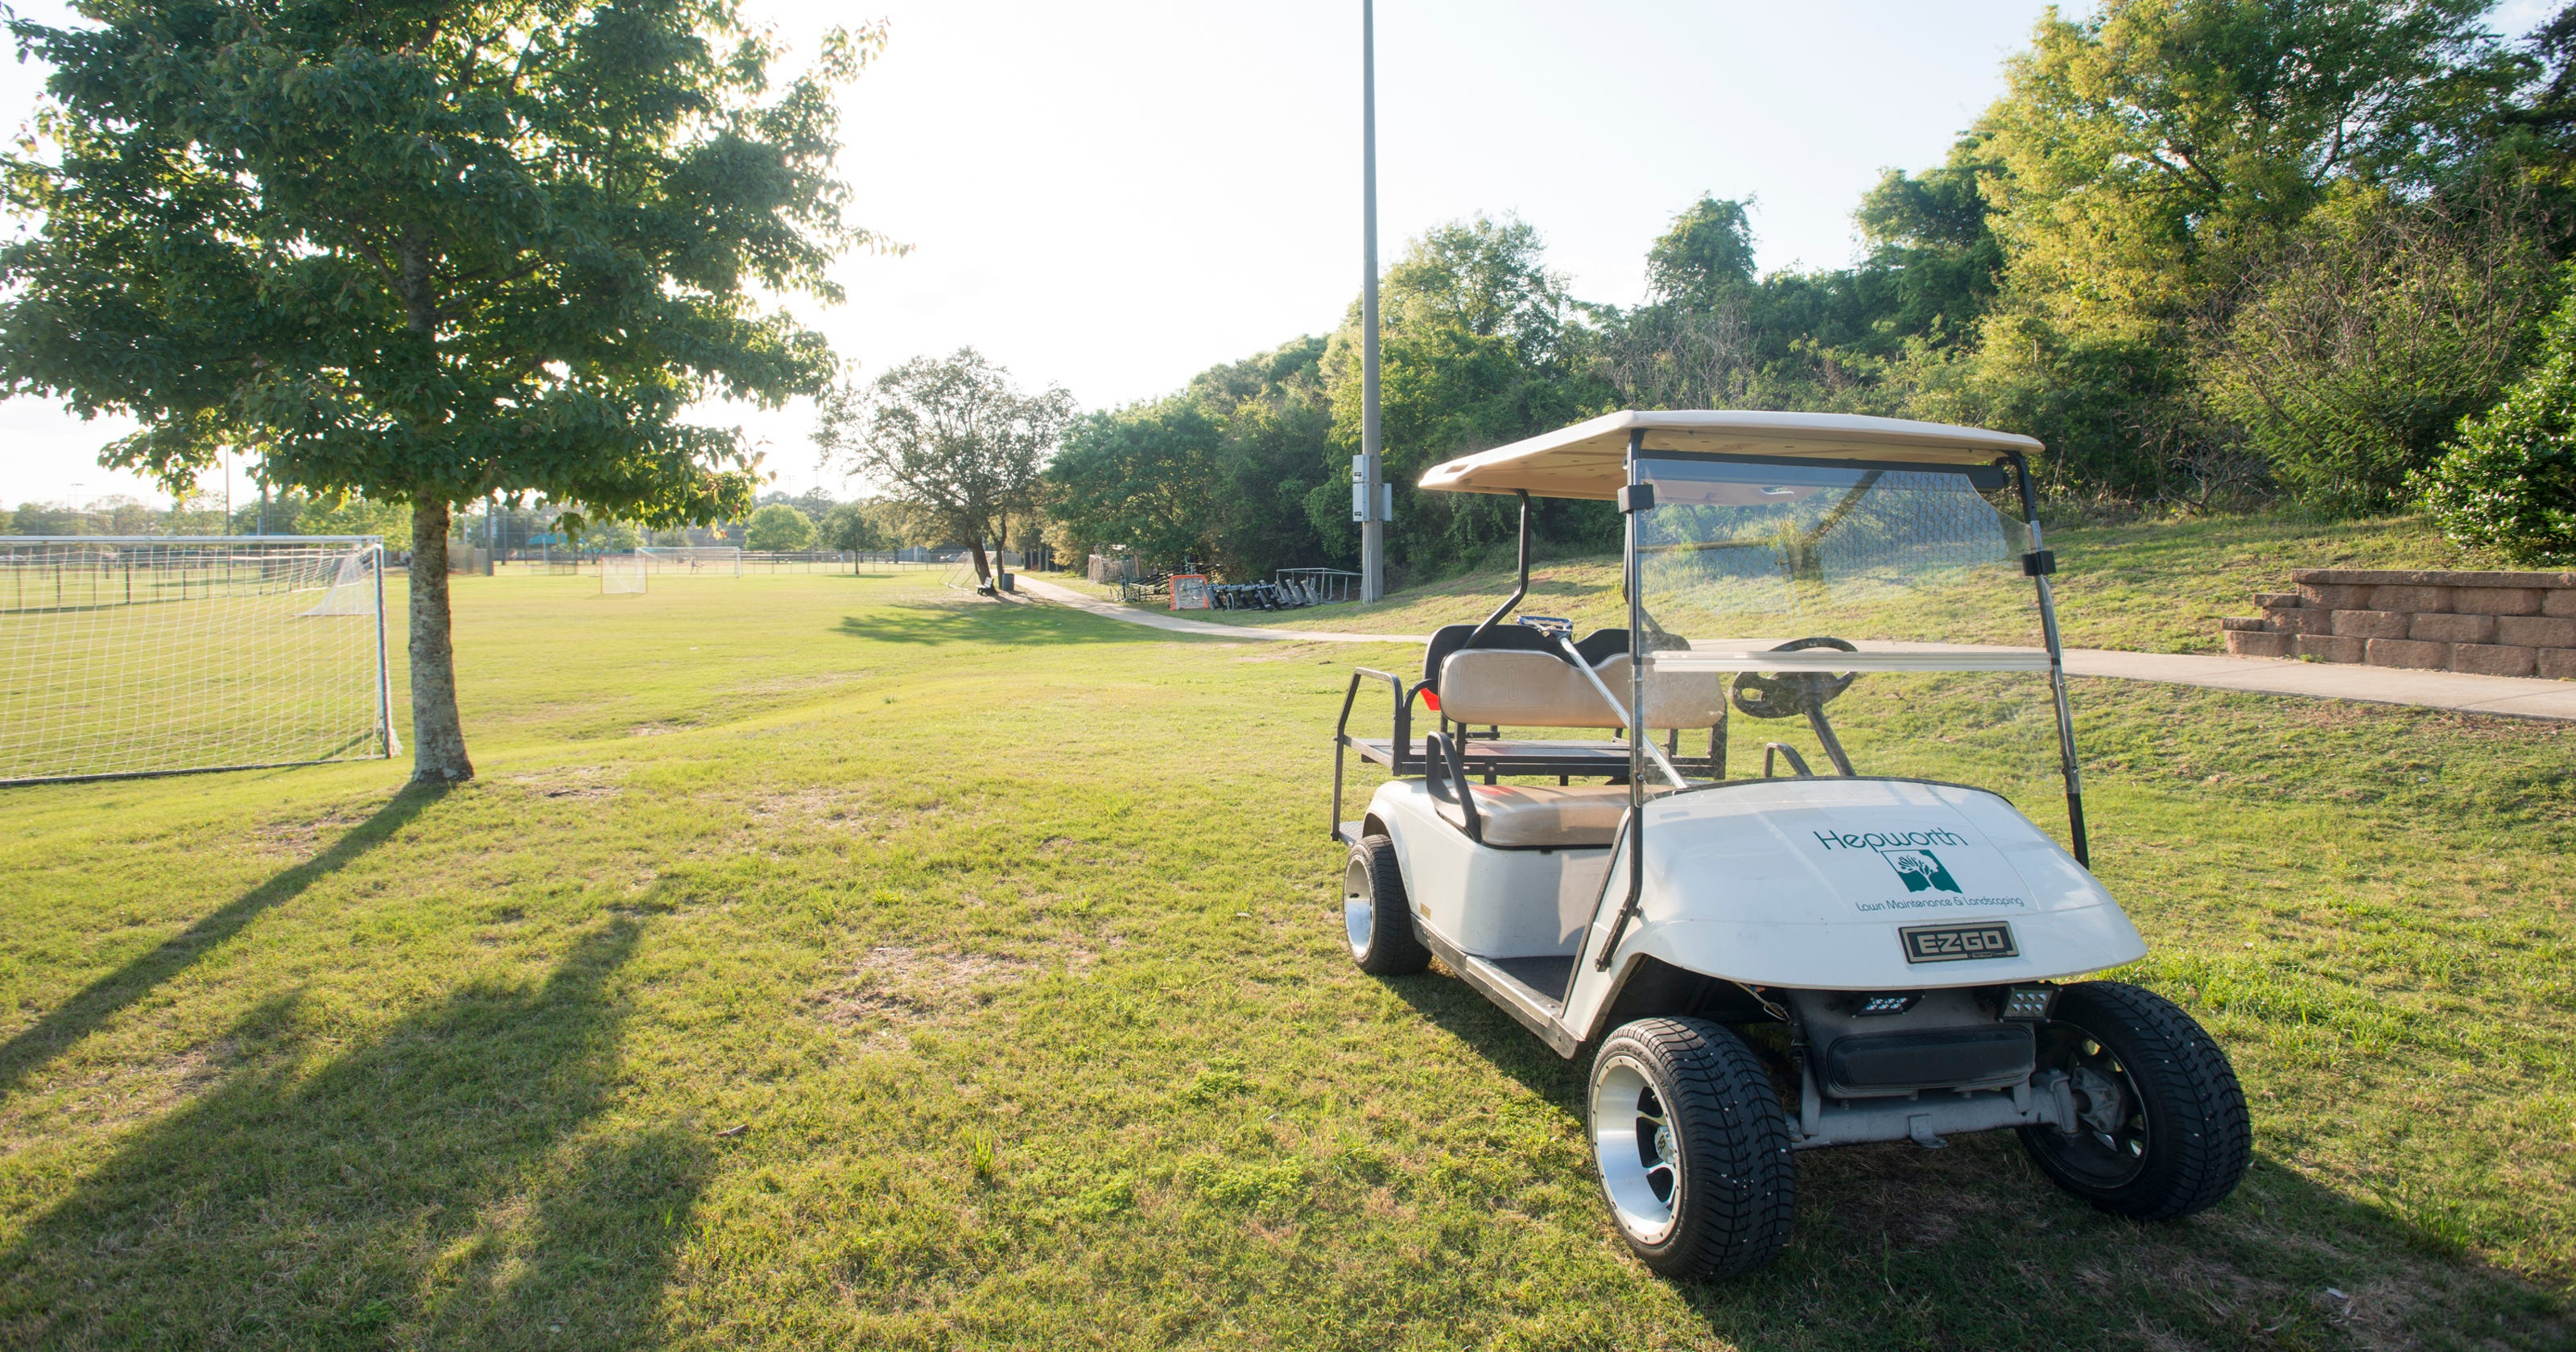 Ontario approves allowing golf carts on some city streets on tank inspection checklist, furniture inspection checklist, annual inspection checklist, utv inspection checklist, suv inspection checklist, golf cart operator checklist, brake inspection checklist, ambulance inspection checklist, real estate inspection checklist, computer inspection checklist, air compressor inspection checklist, trailer inspection checklist, bmw inspection checklist, engine inspection checklist, boat inspection checklist, van inspection checklist, automobile inspection checklist, commercial inspection checklist, snowmobile inspection checklist, bike inspection checklist,